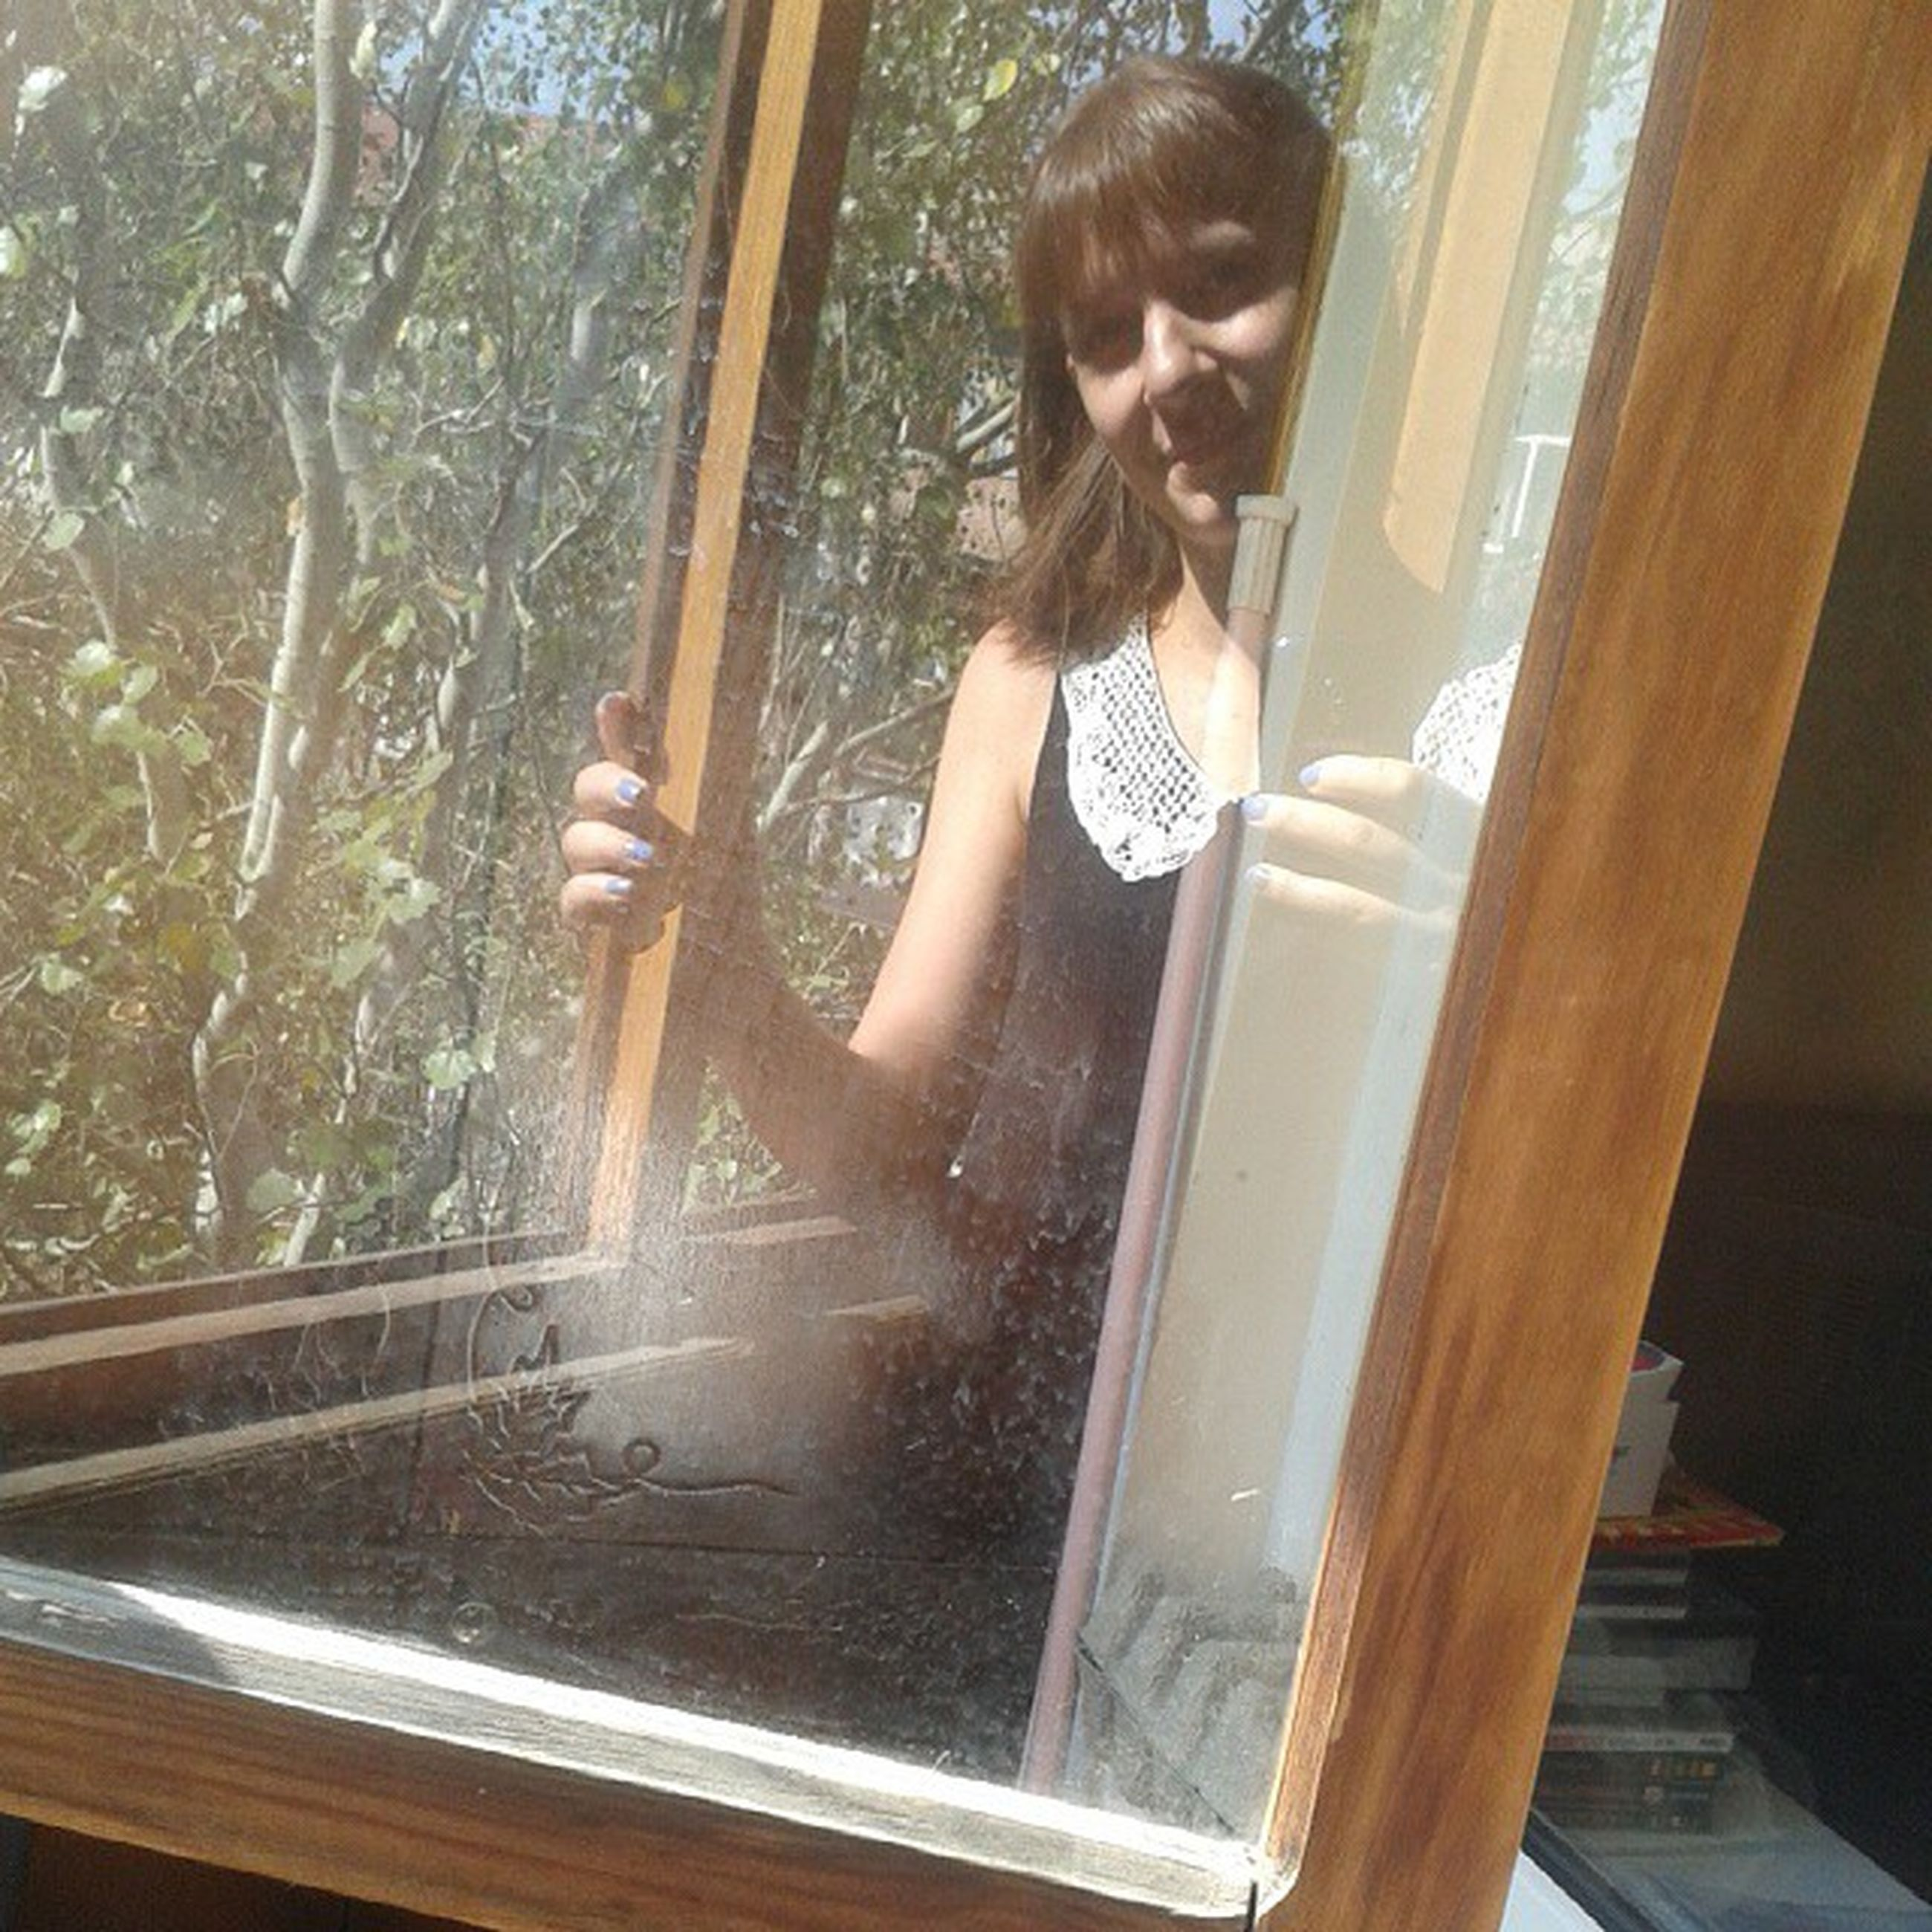 indoors, lifestyles, window, young adult, person, glass - material, full length, leisure activity, transparent, young women, casual clothing, standing, looking through window, reflection, side view, three quarter length, sitting, built structure